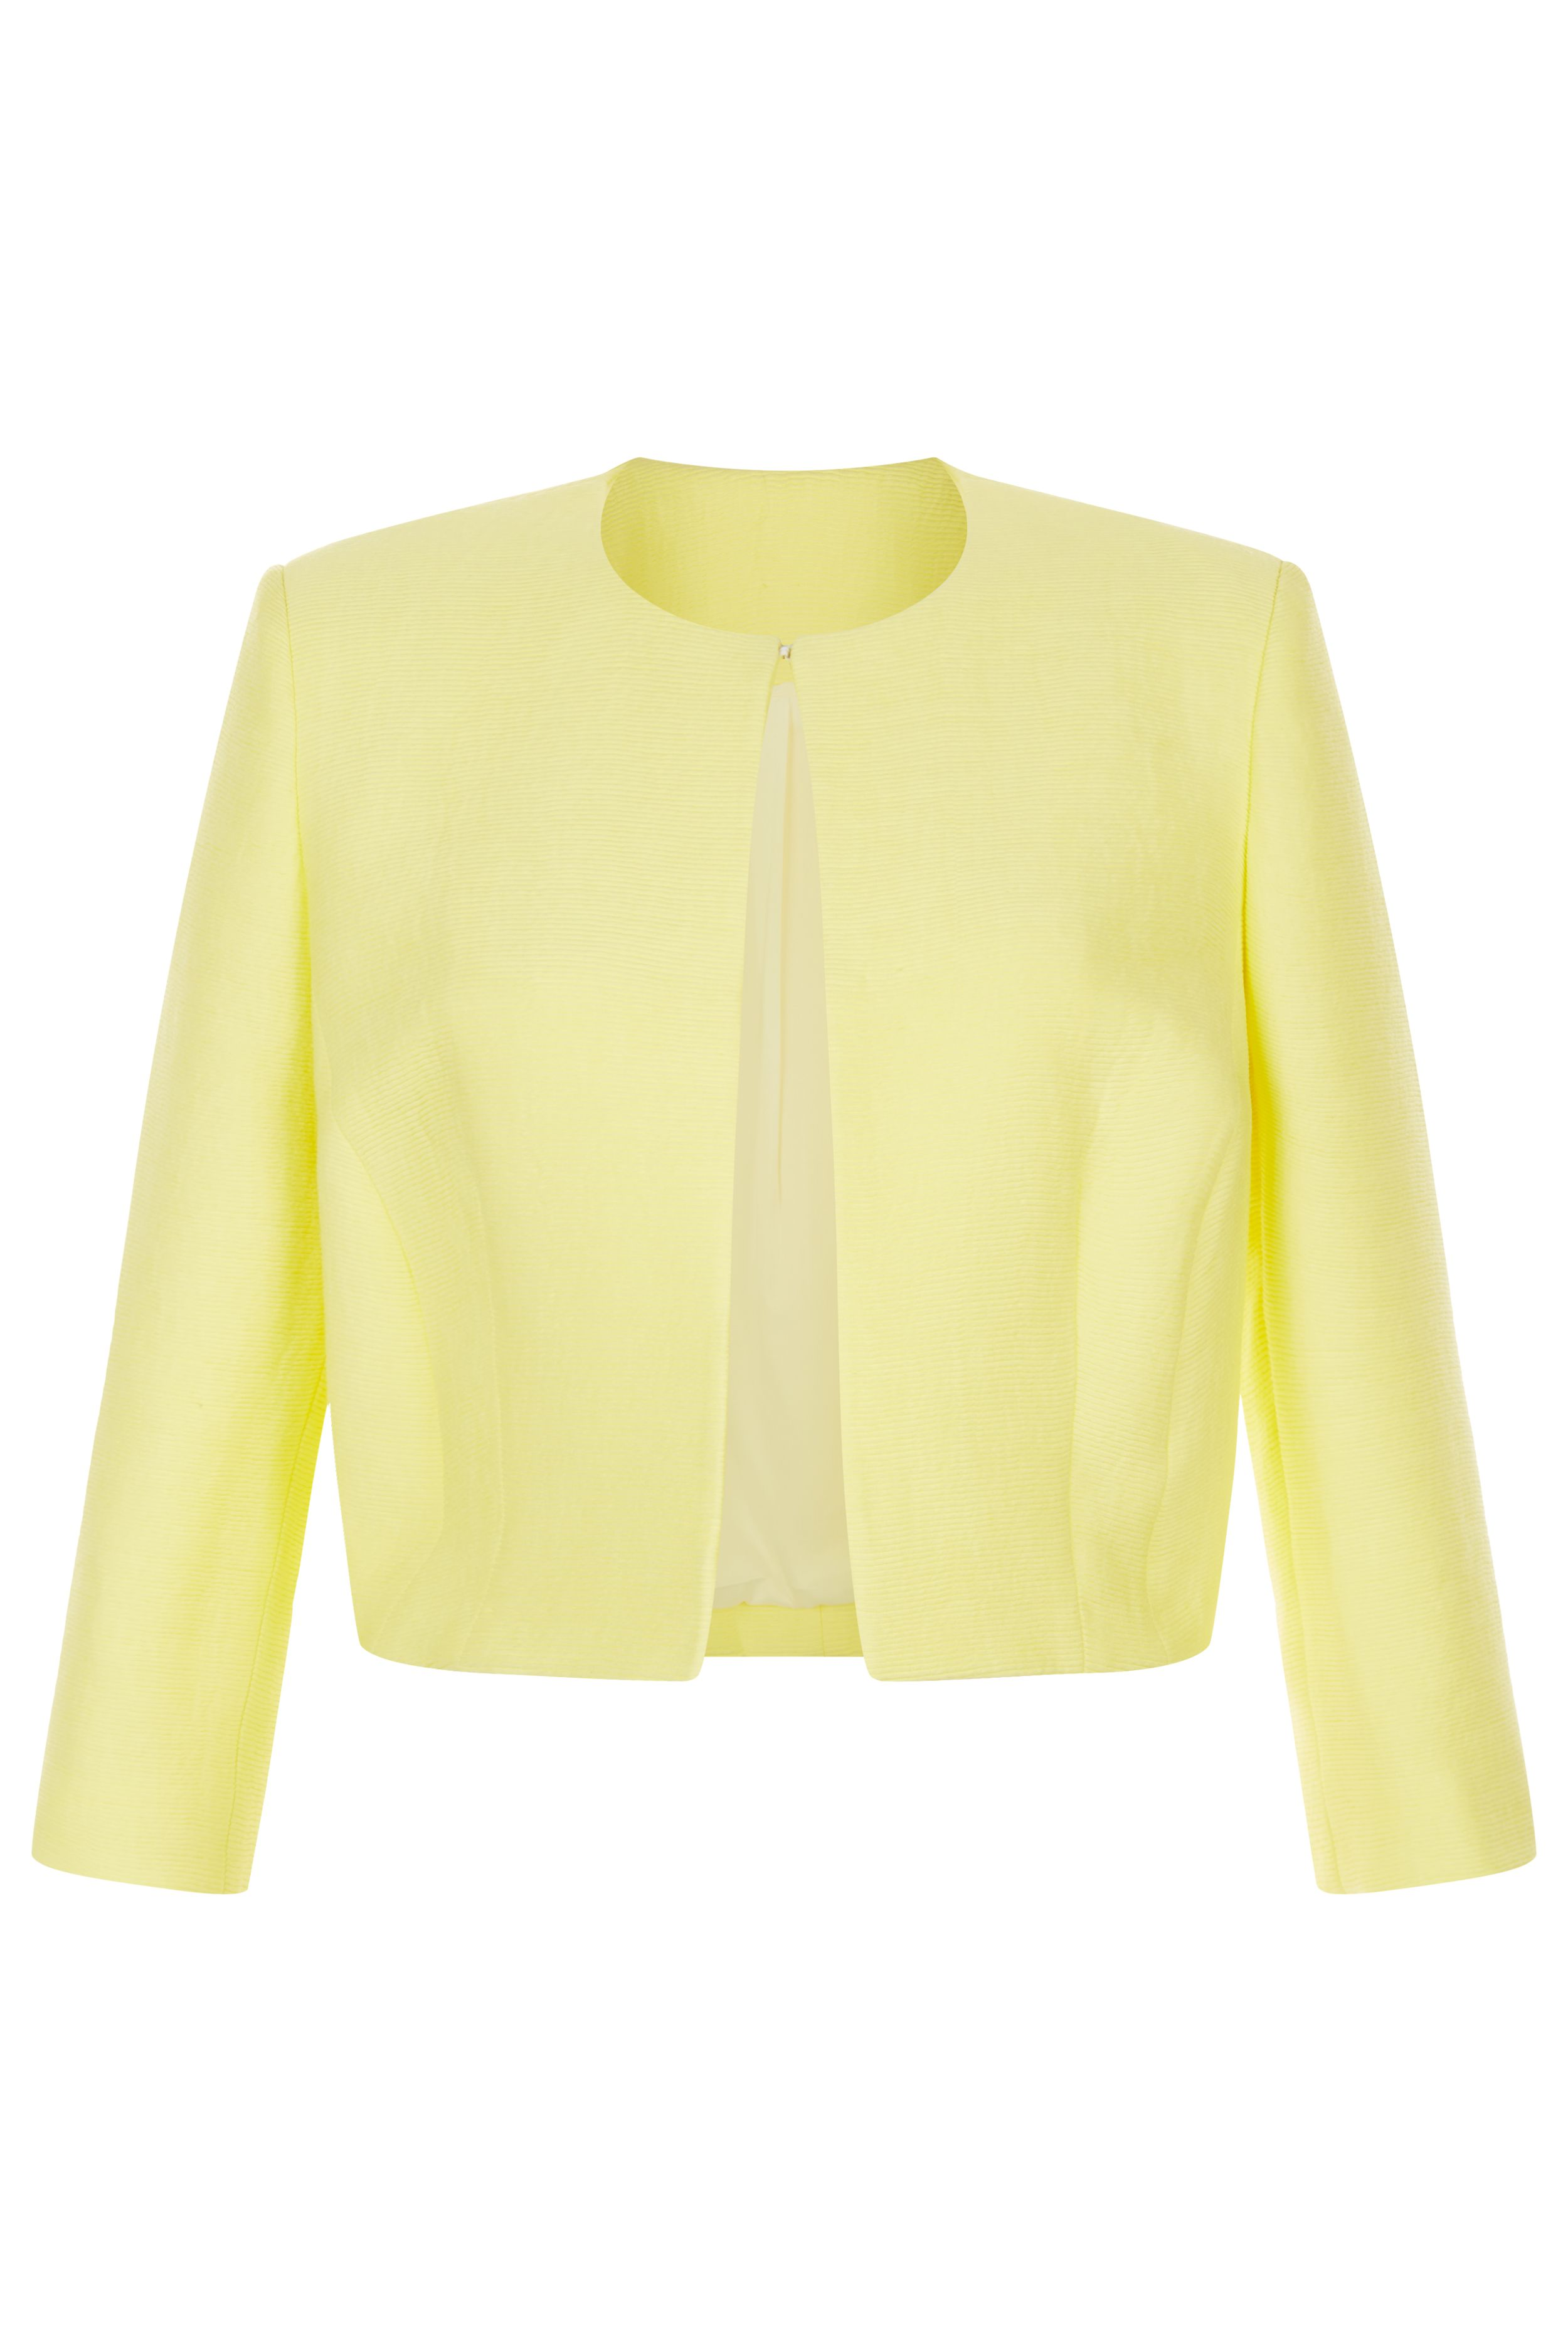 Fenn Wright Manson Granada Jacket, Lemon